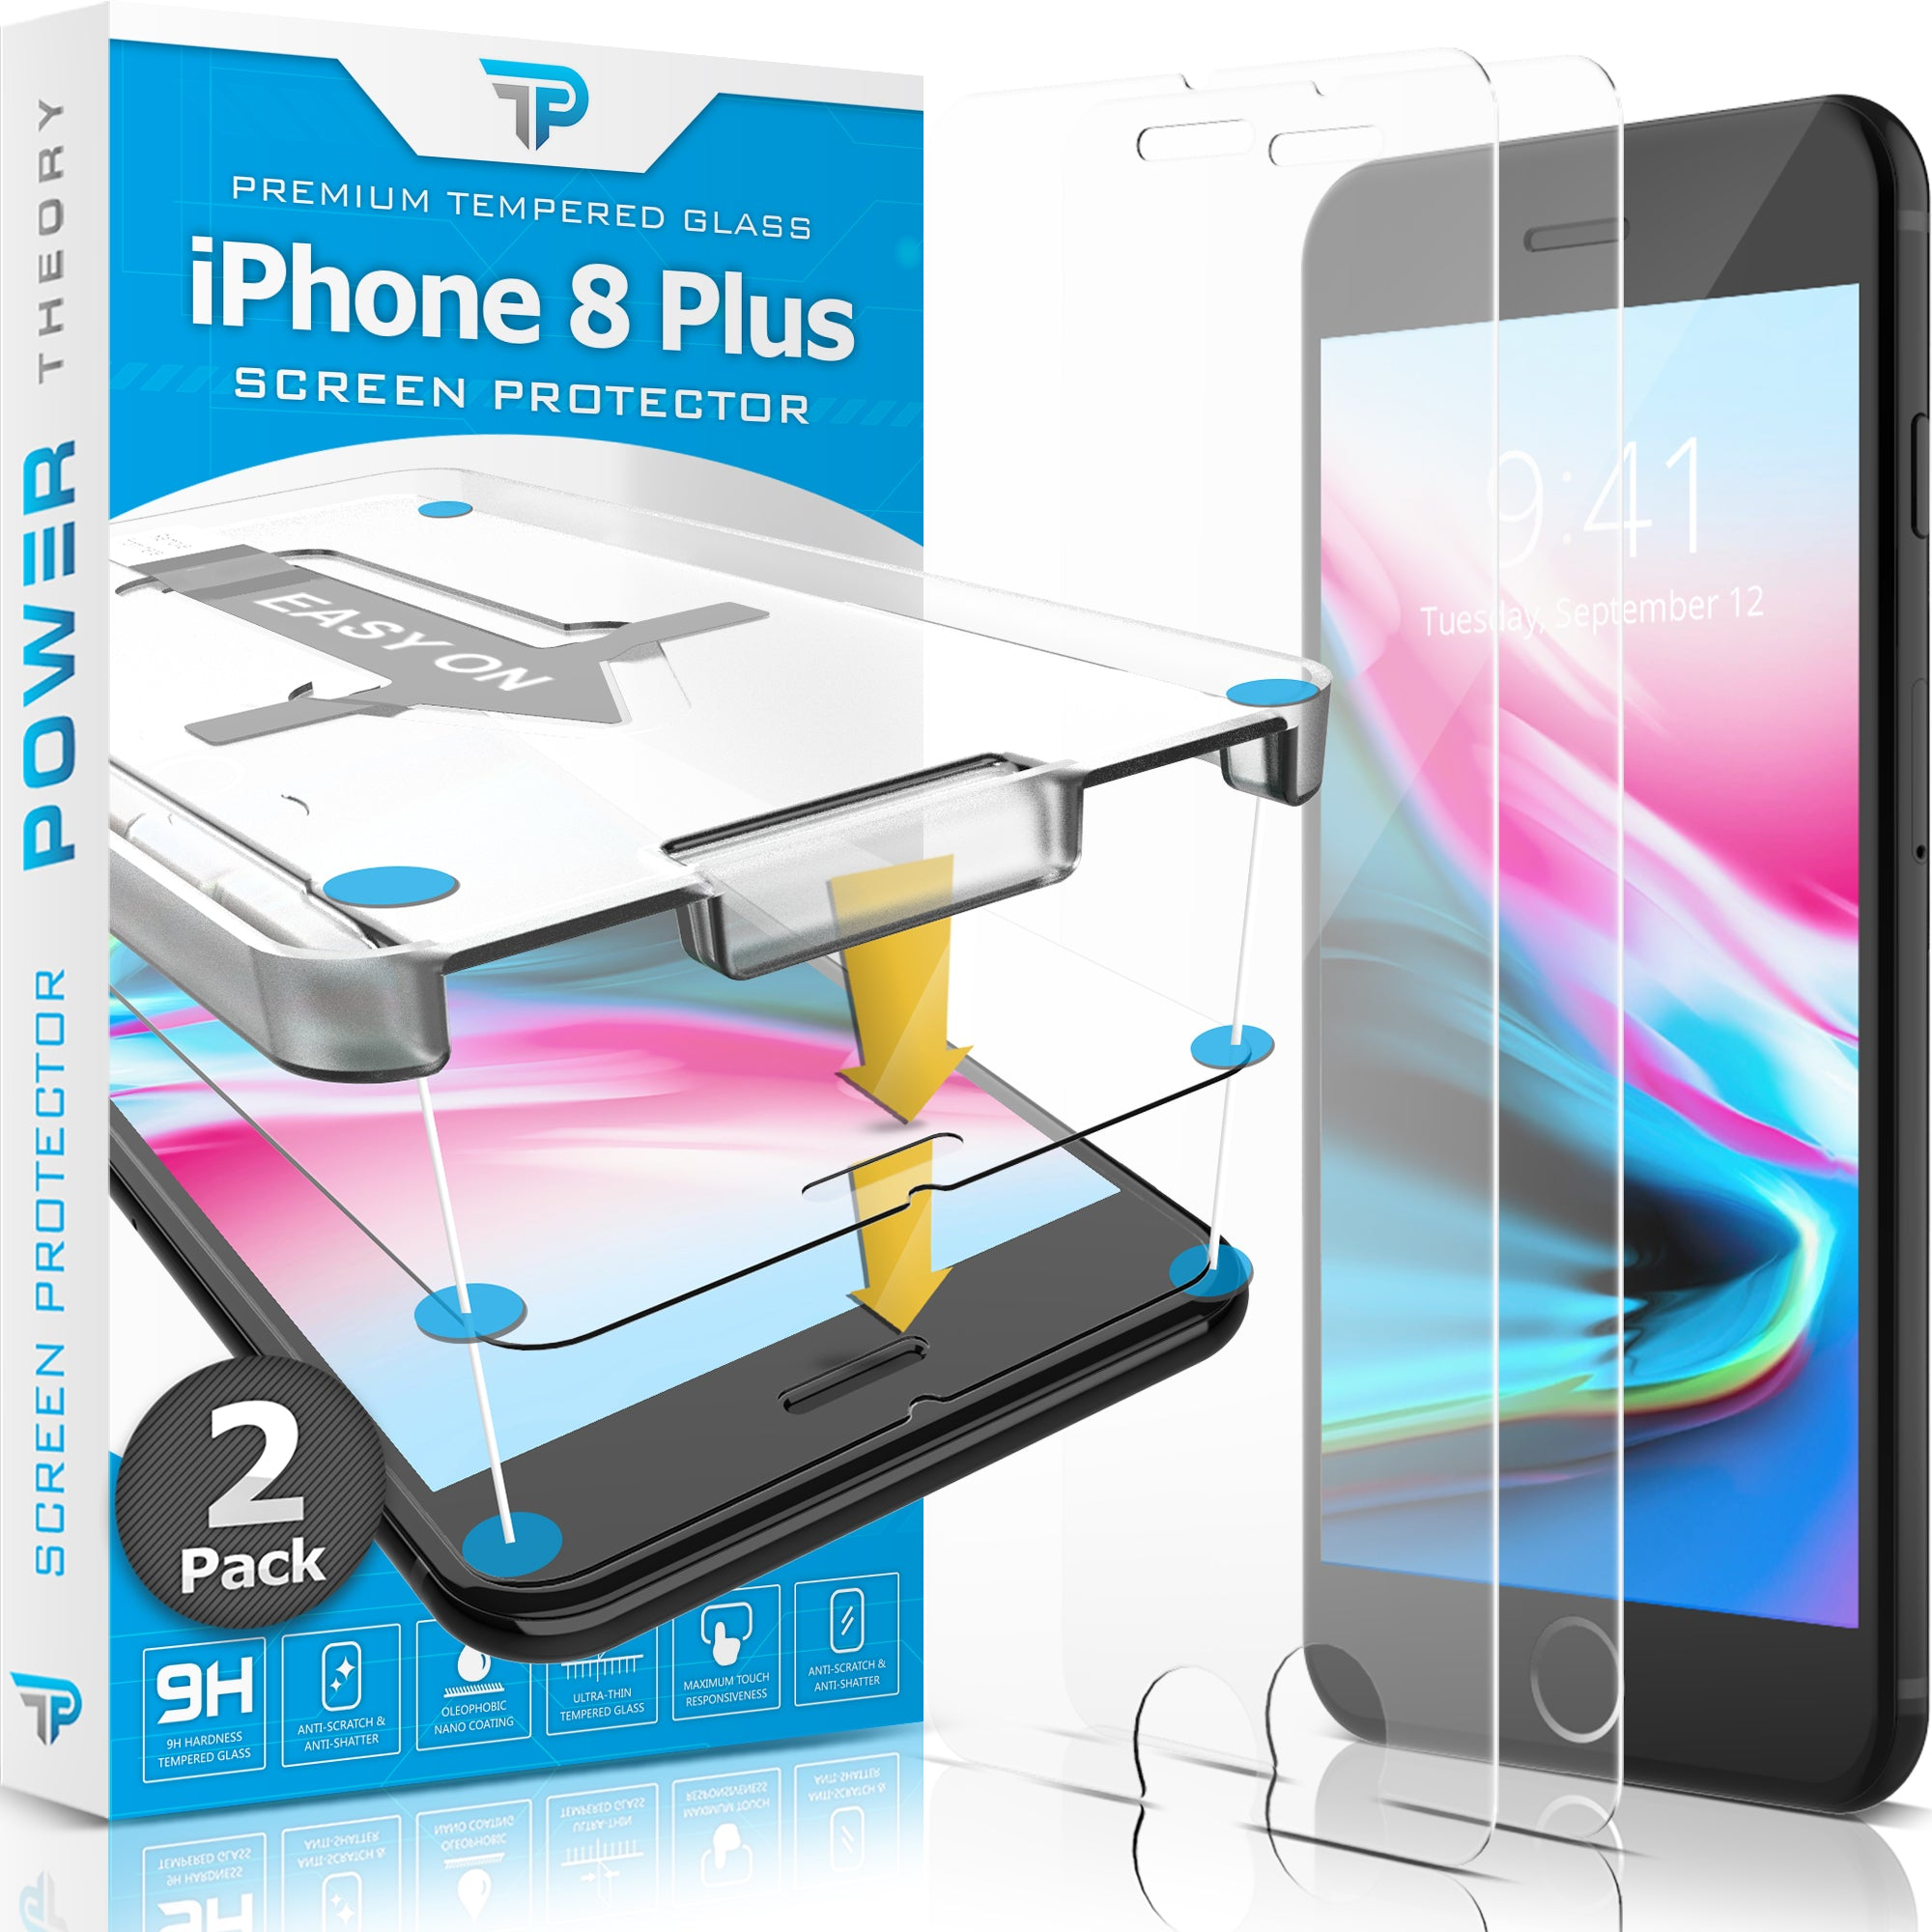 Power Theory Panzerglasfolie Passend für iPhone 8 Plus (2 Stück)